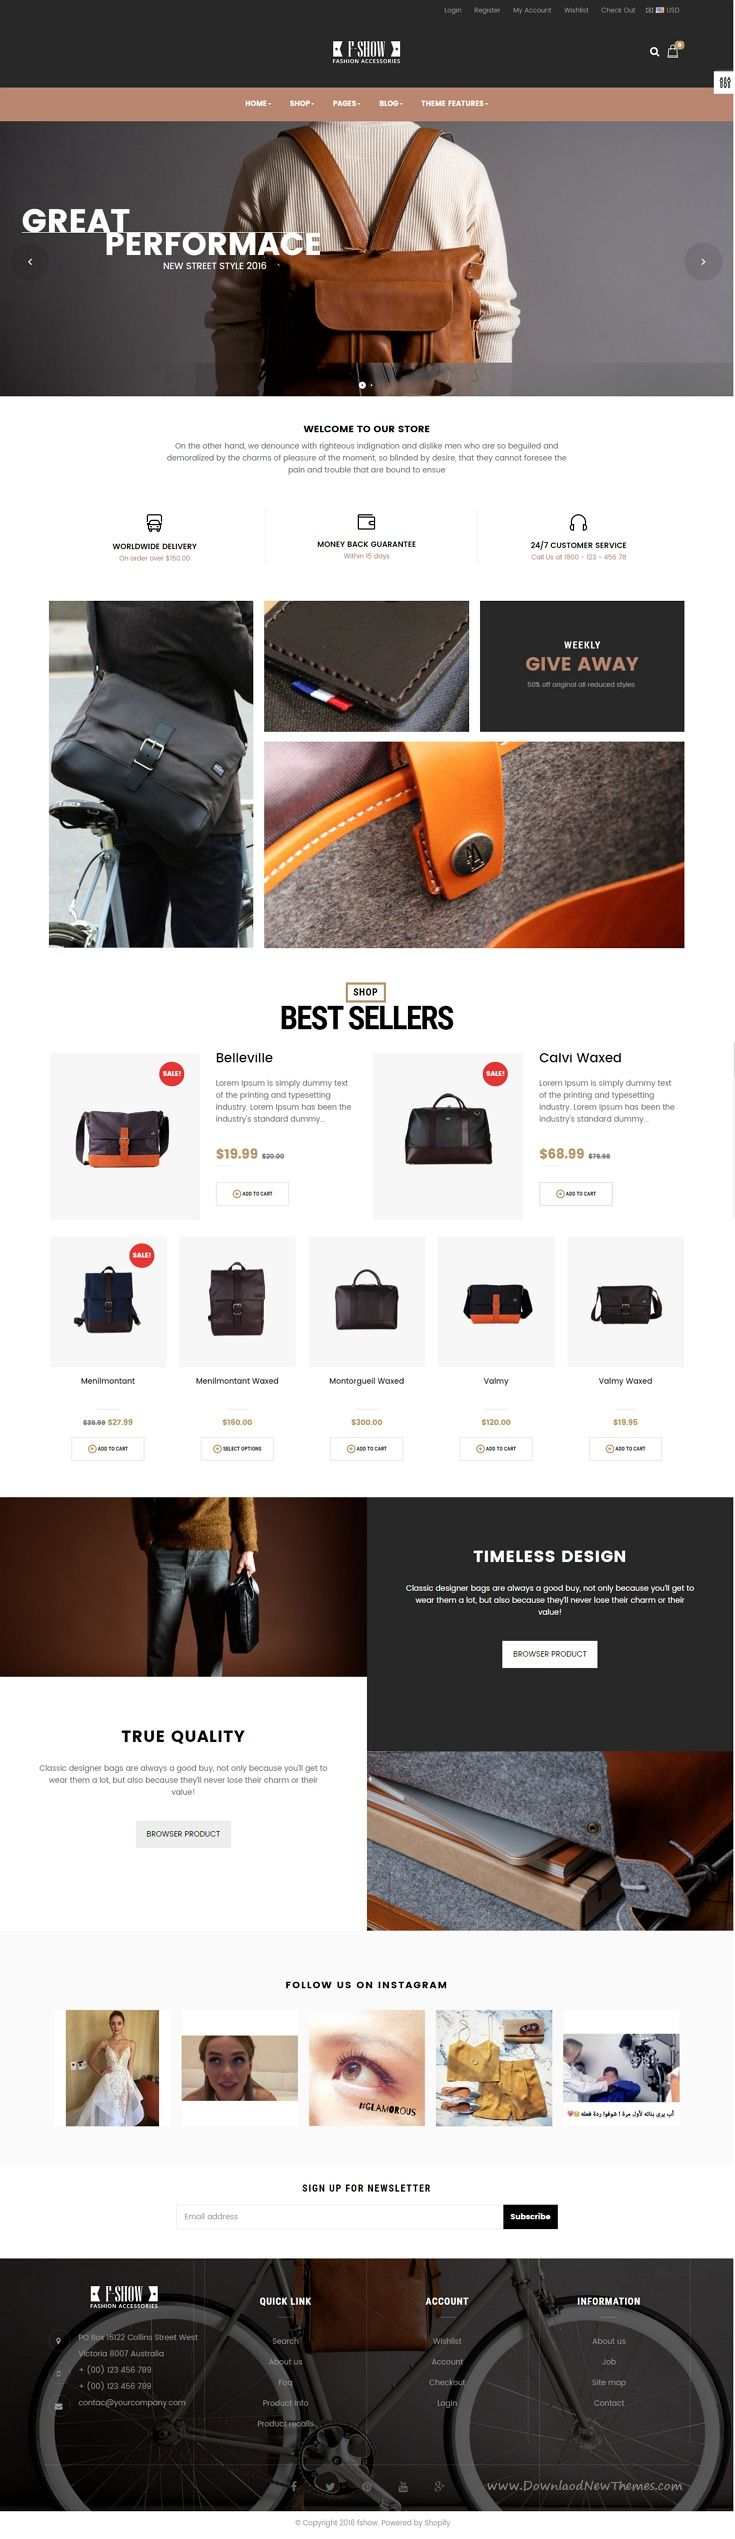 Ap Fshow is responsive Shopify template. It is designed for any eCommerce #website and diversified commodities as fashion store, cosmetic store, #bag #store and multiple store.